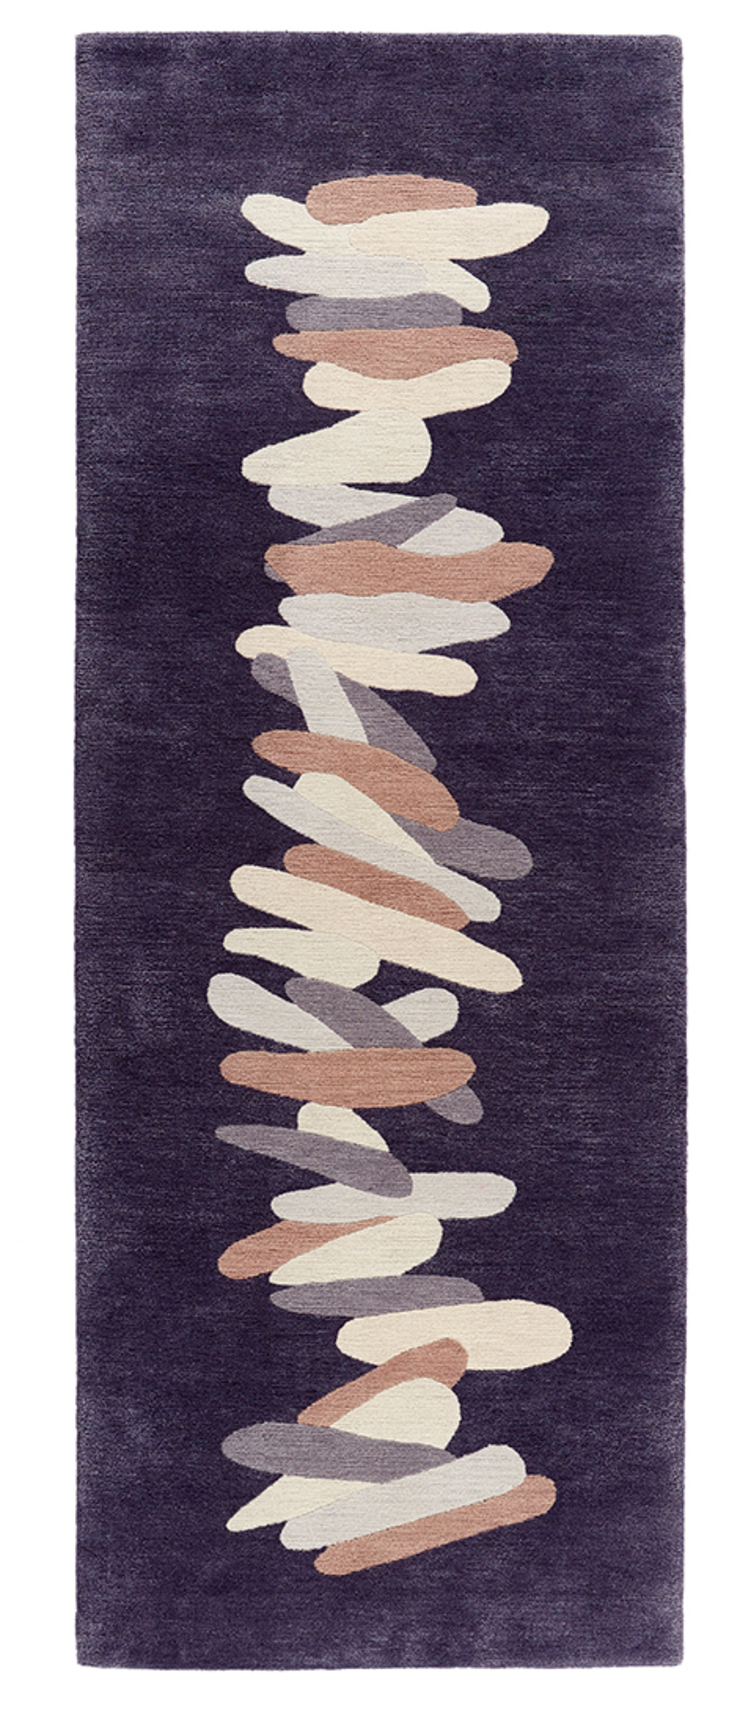 Deirdre Dyson TUMBLE hand knotted wool and silk carpet runner Deirdre Dyson Carpets Ltd Walls & flooringCarpets & rugs